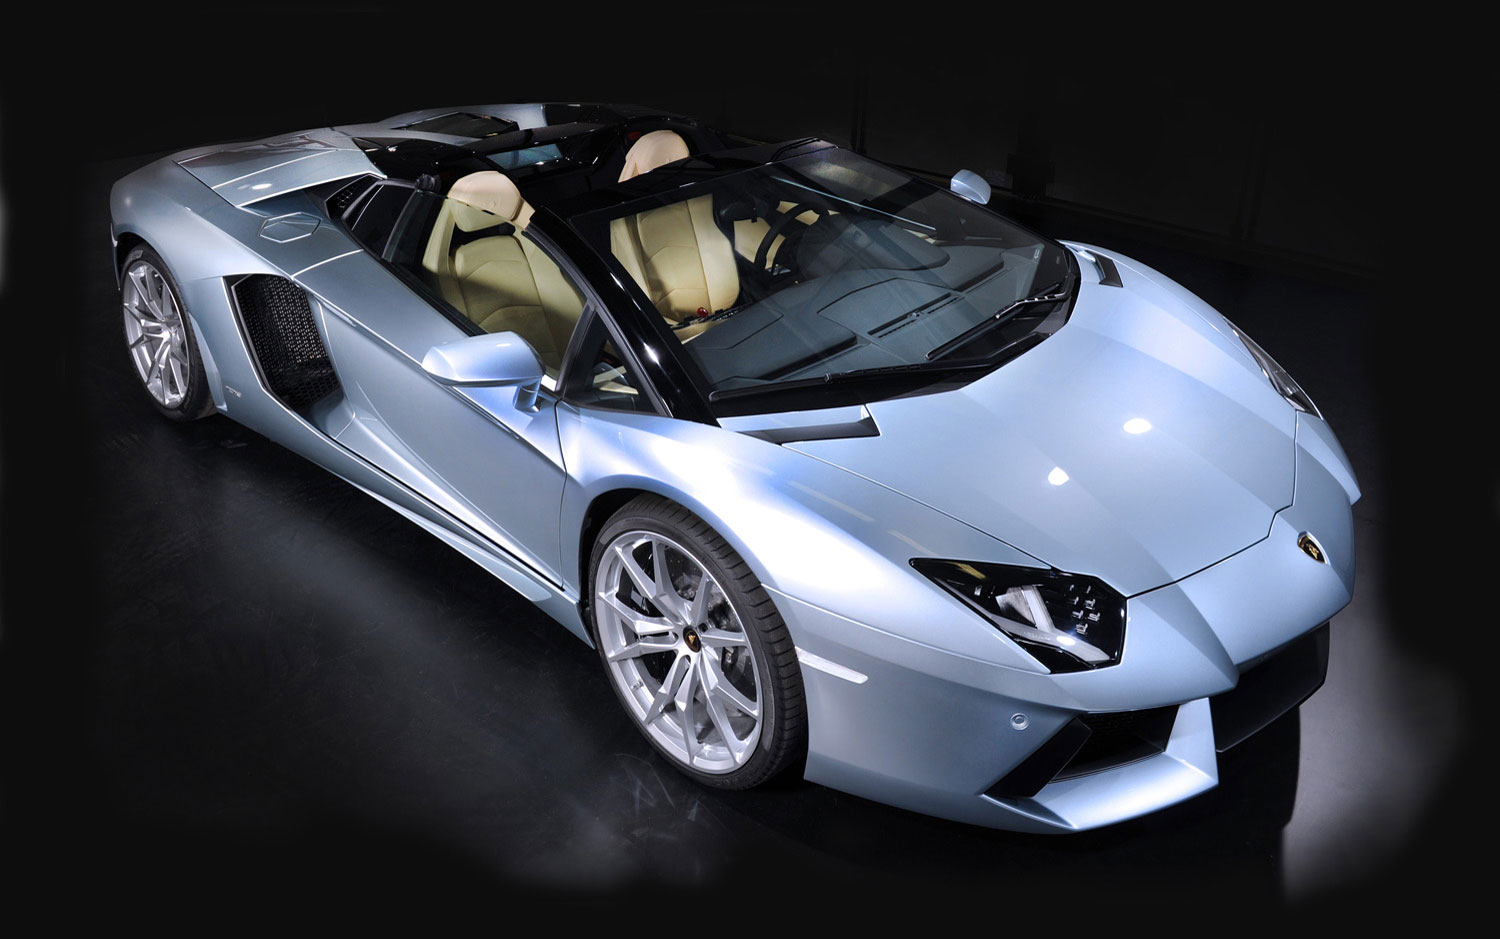 cars model 2013 2014 2013 lamborghini aventador lp 700 4. Black Bedroom Furniture Sets. Home Design Ideas